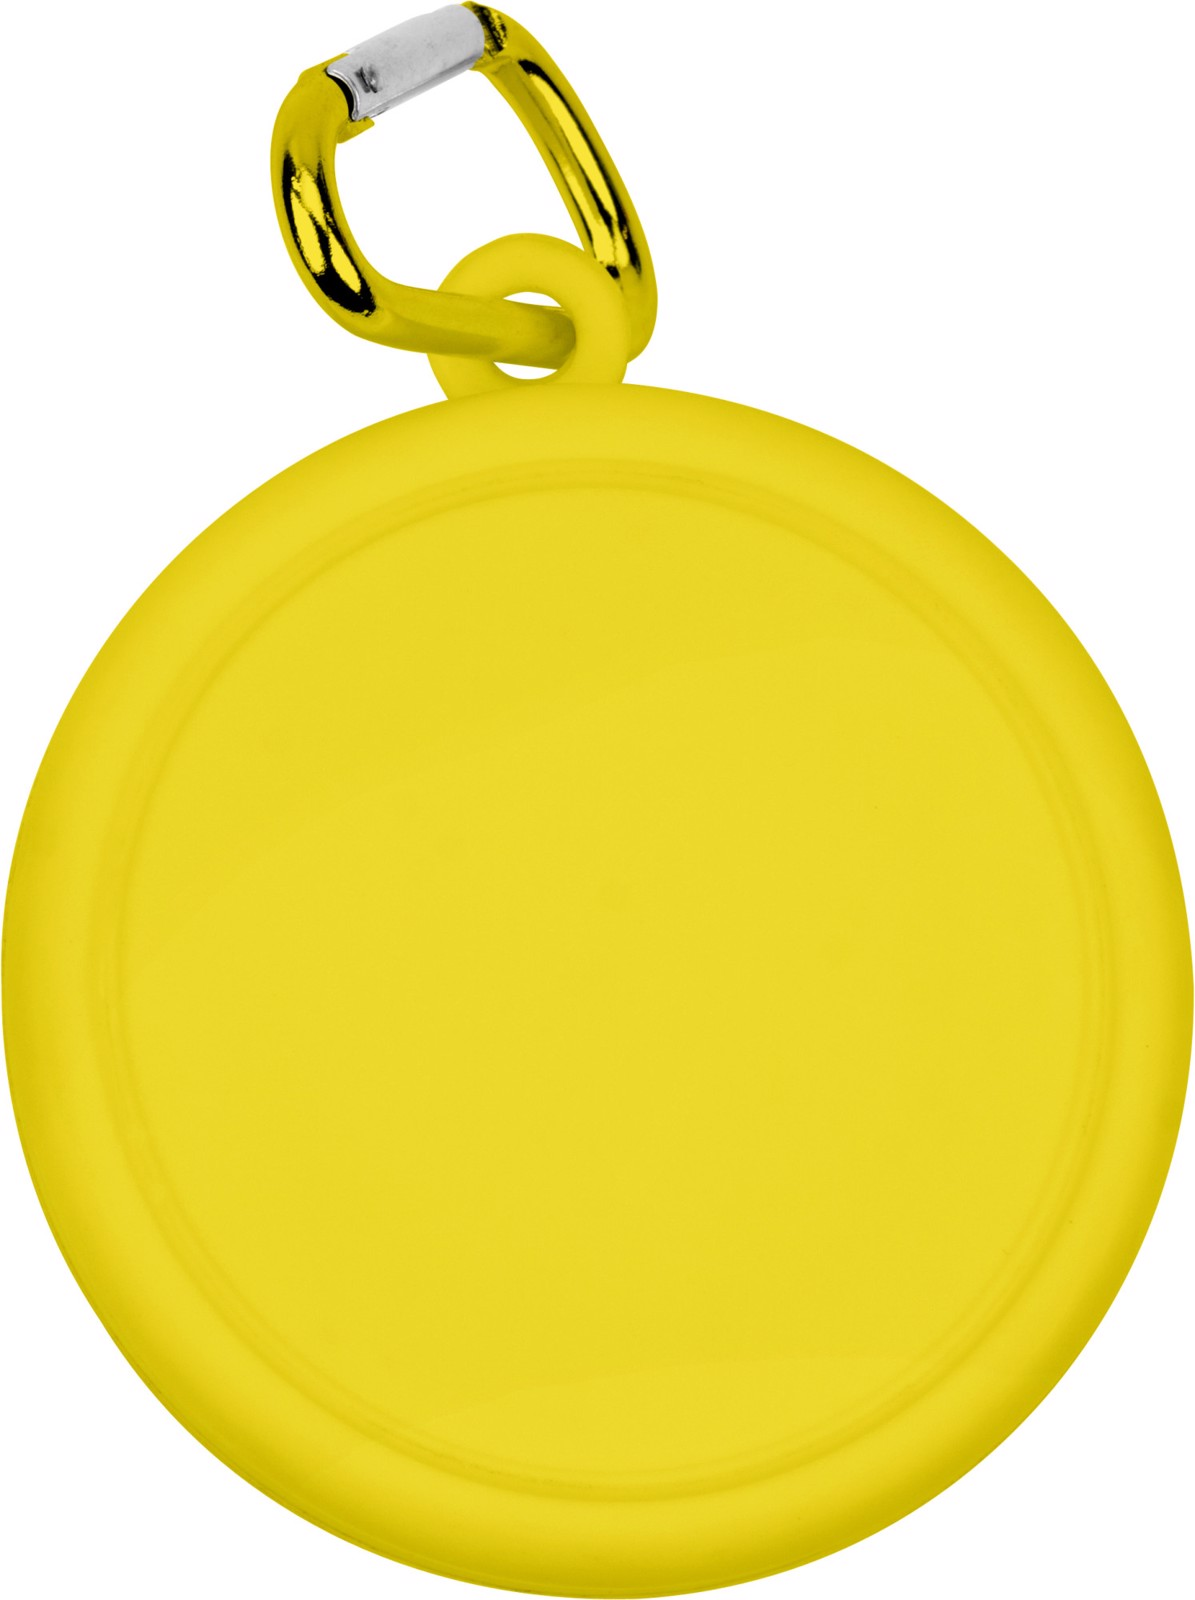 PET drinking cup - Yellow